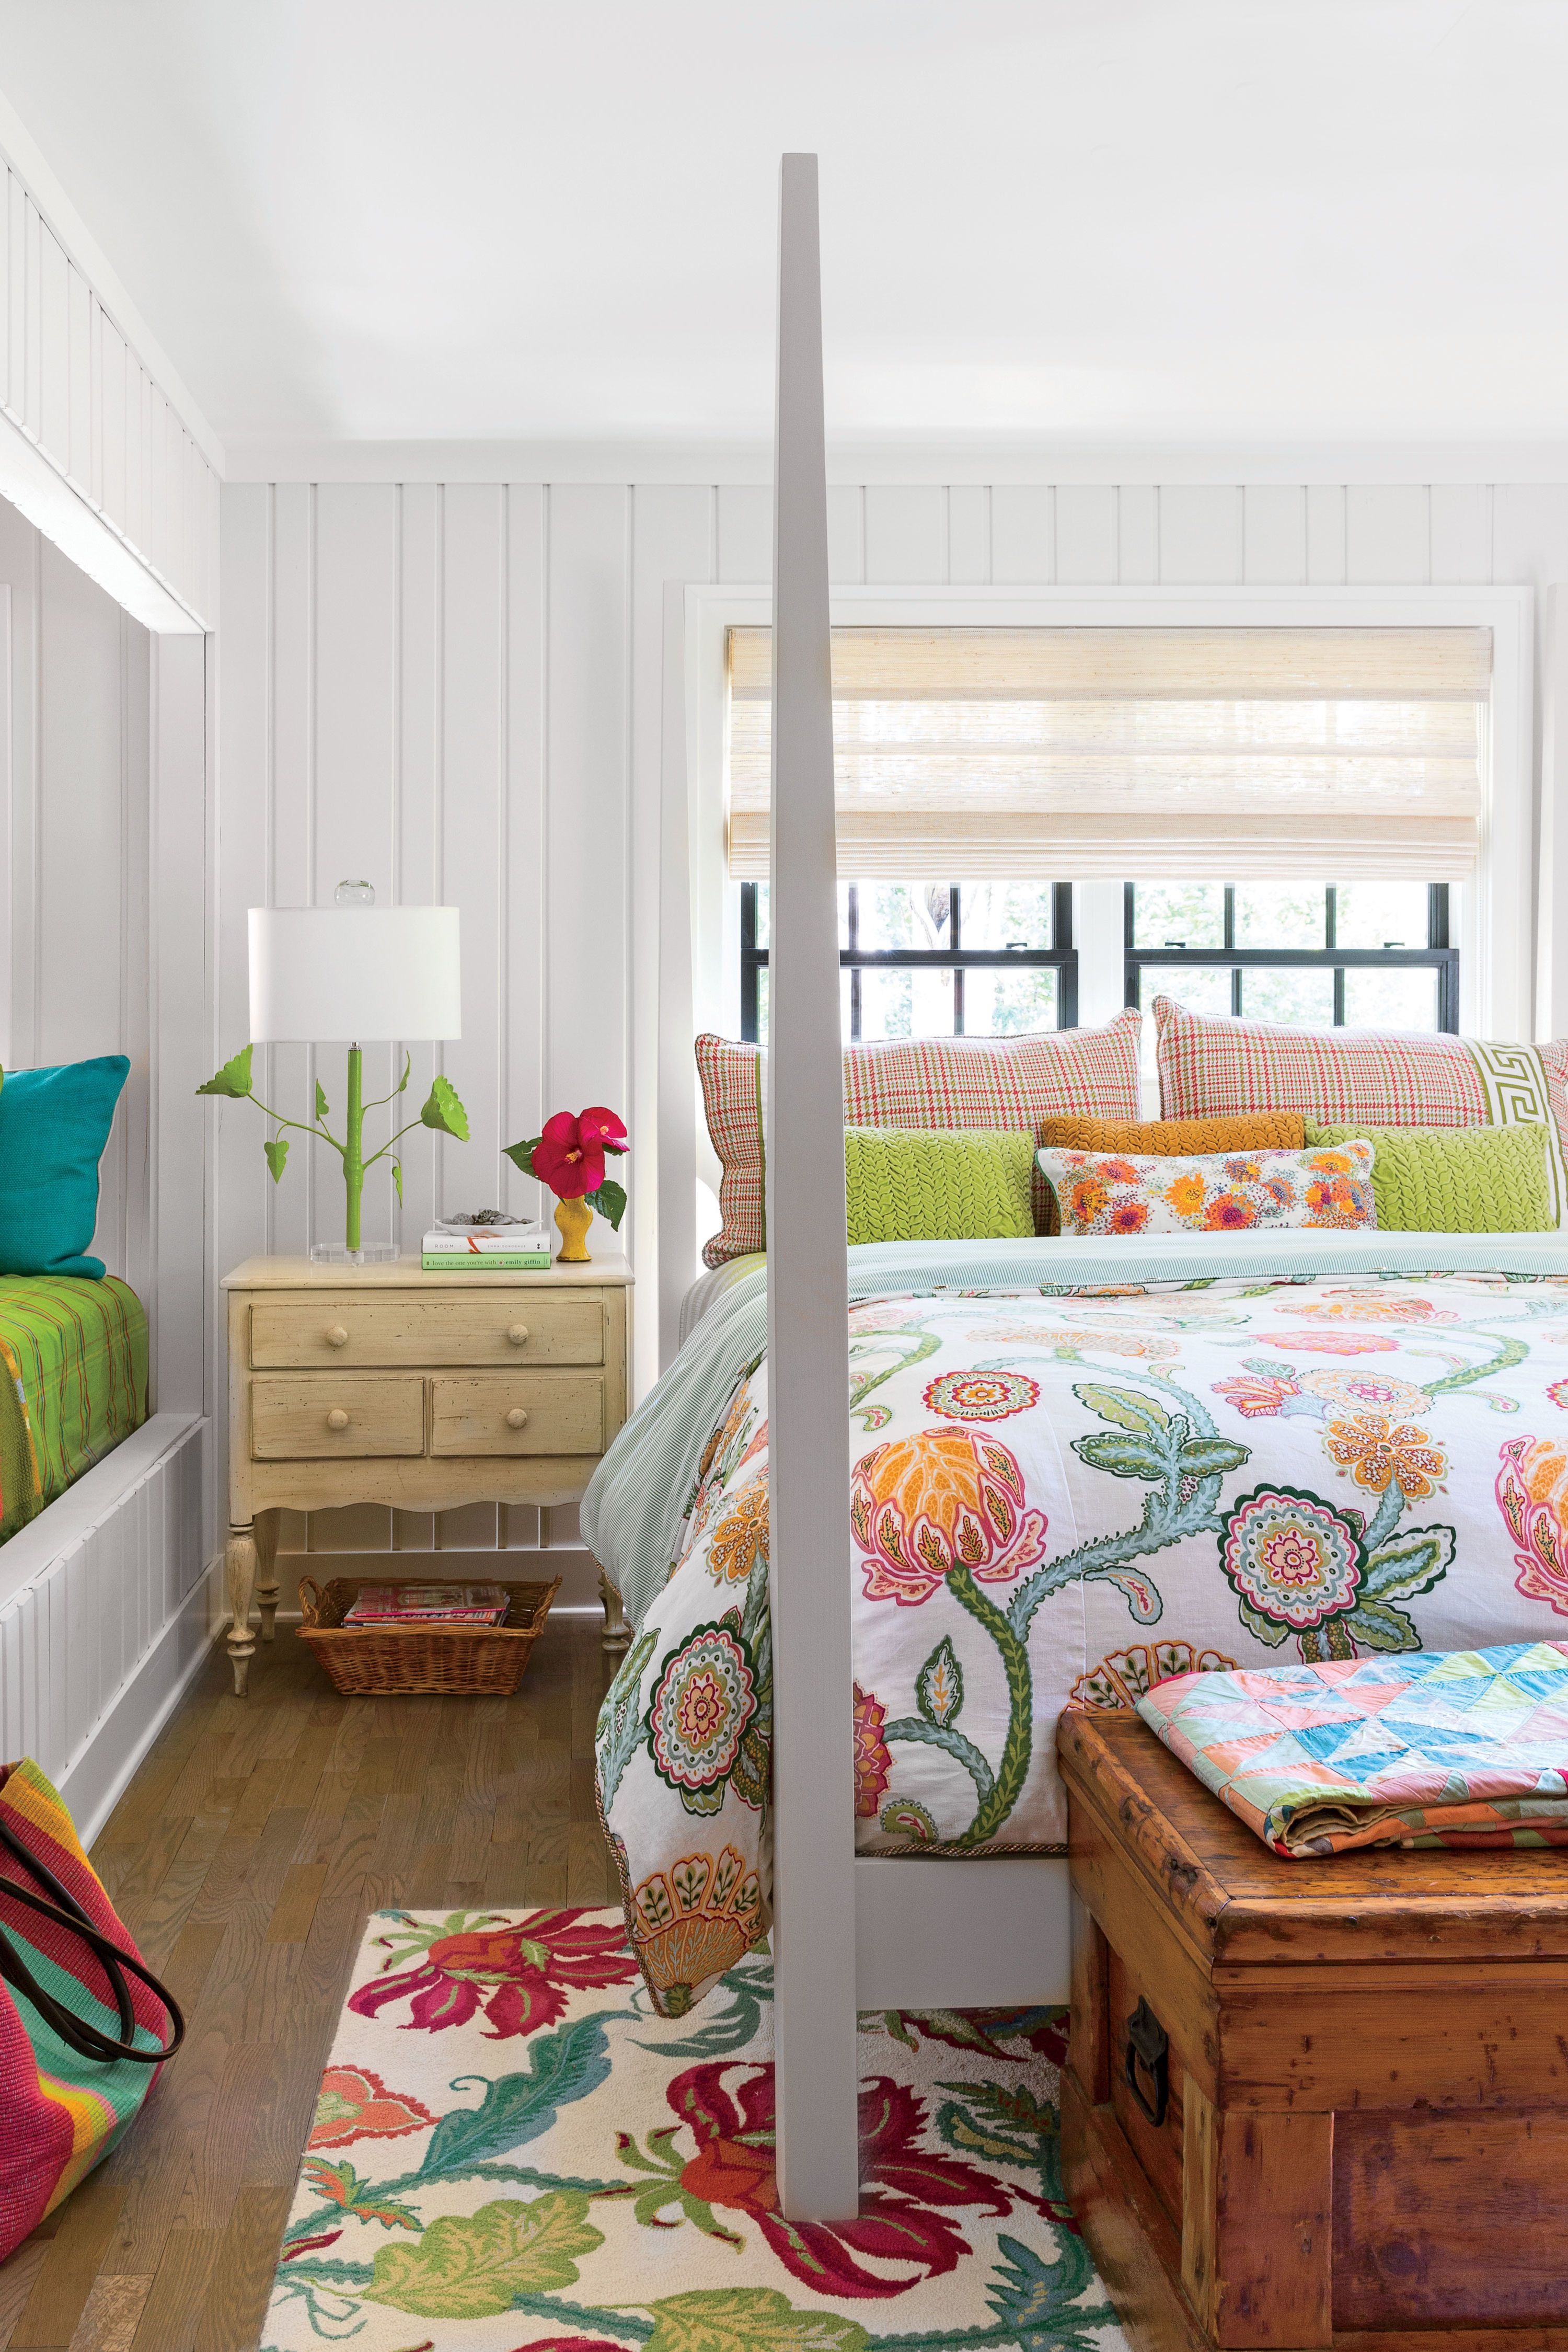 This light filled Michigan bedroom features a snug